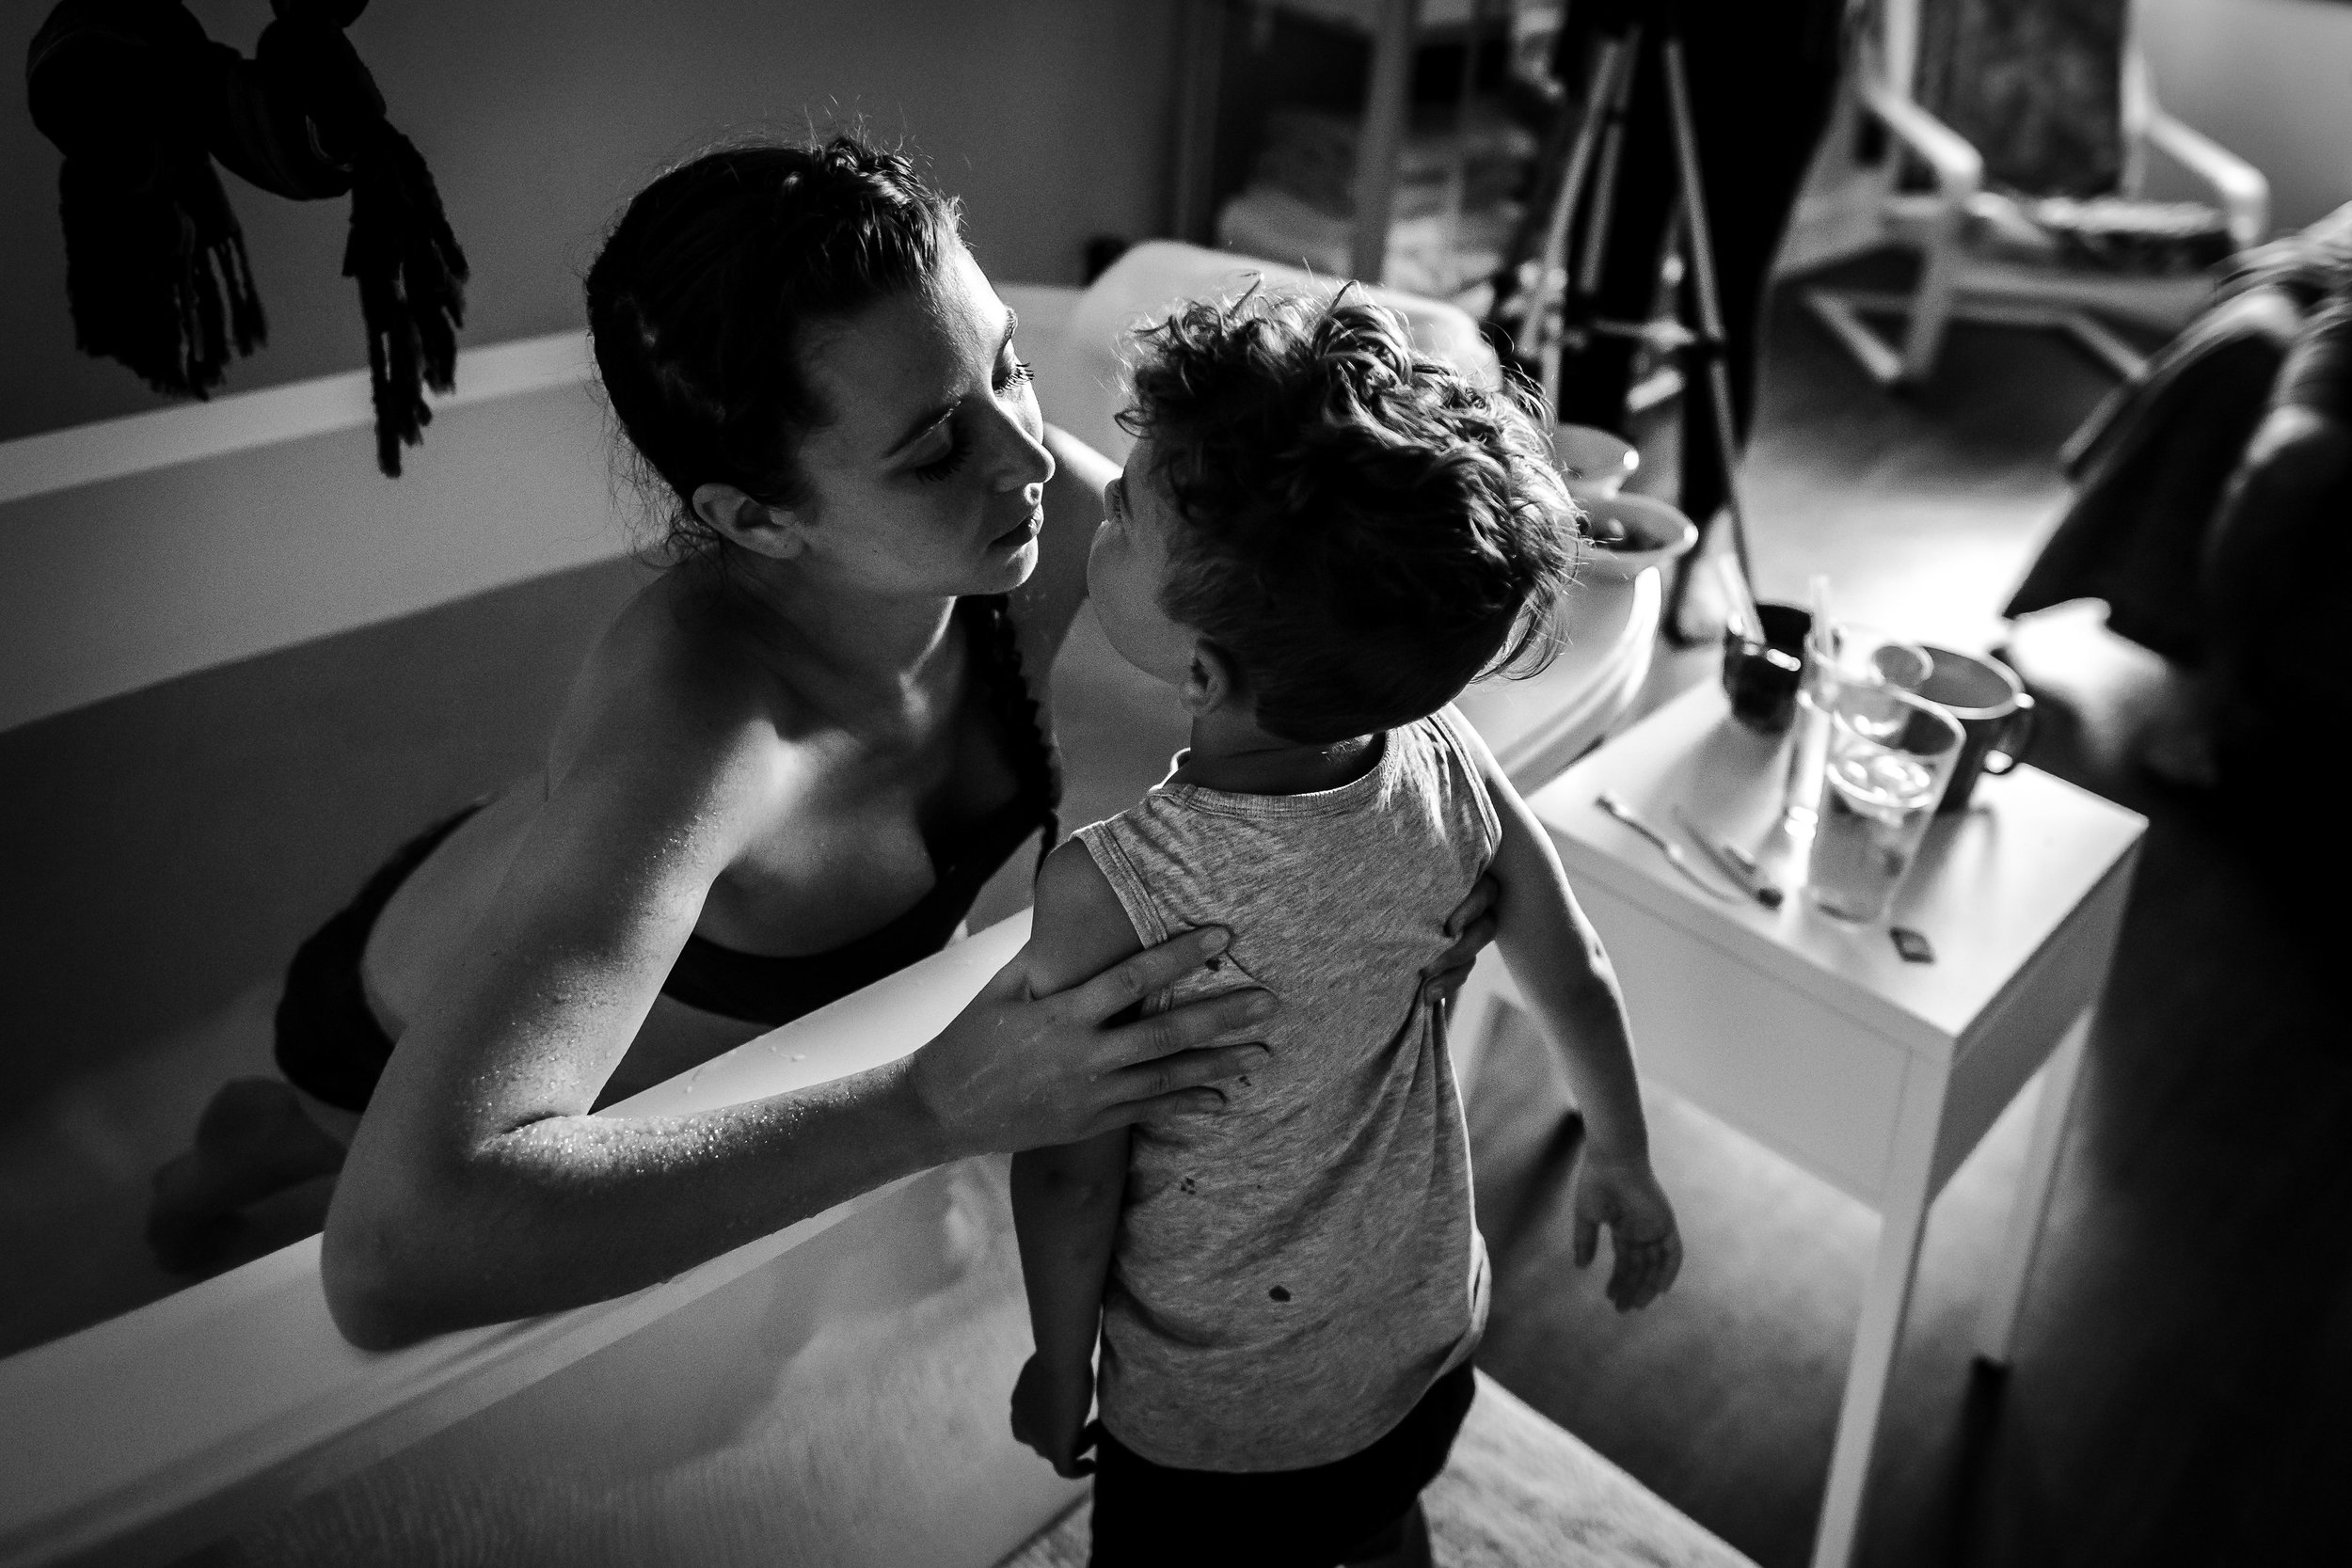 Adele embraces her older son just before the next wave came...image taken at the Birth Center of Boulder.